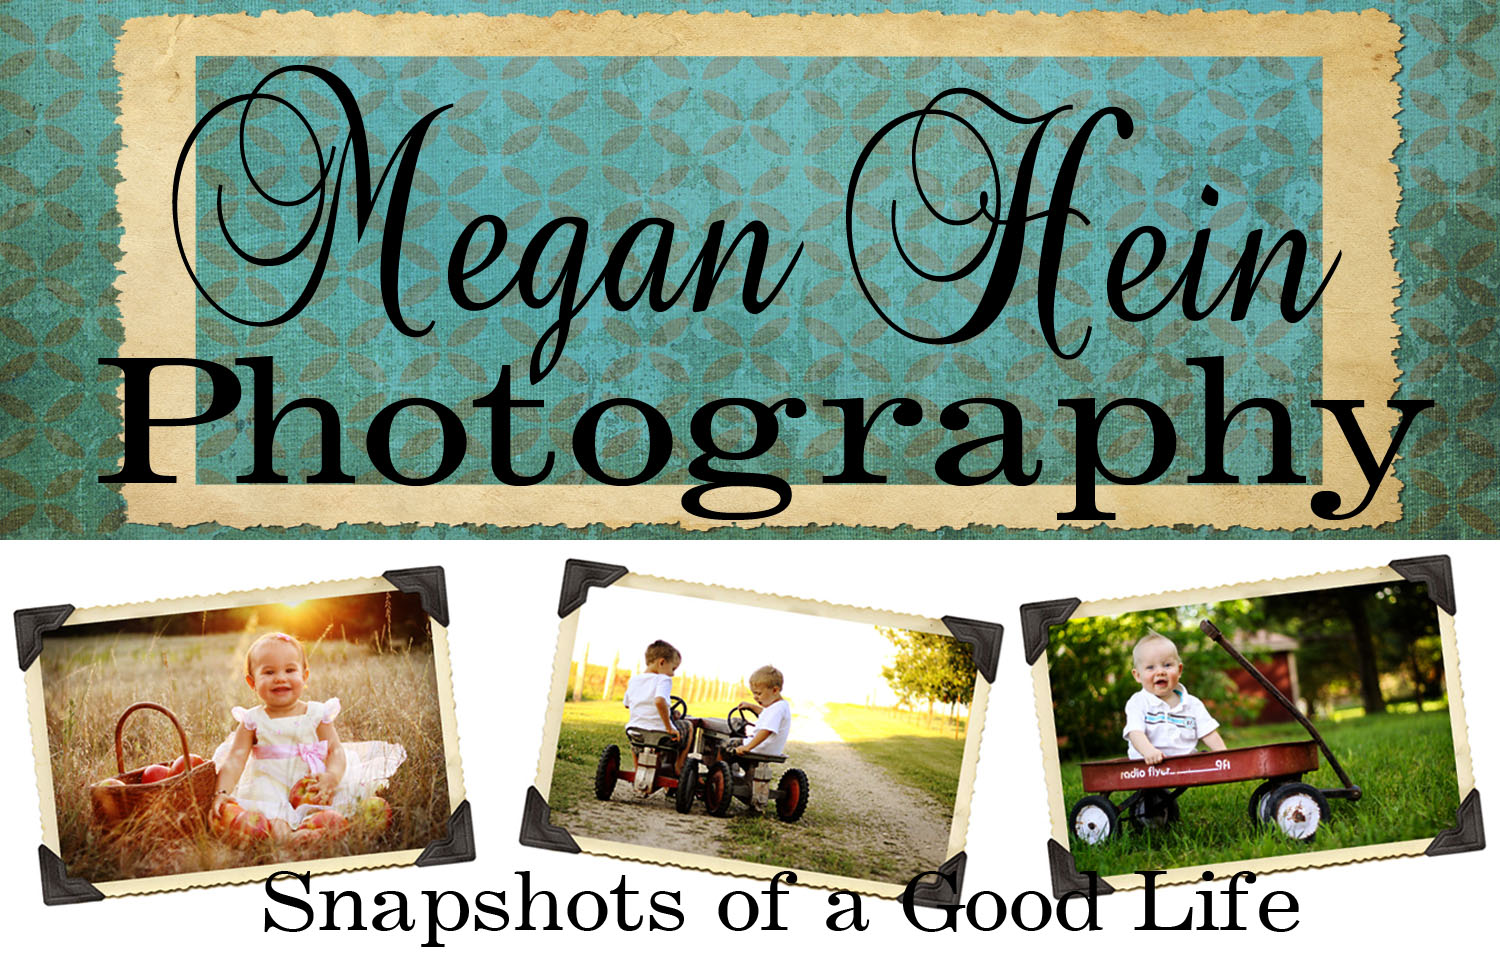 Snapshots of a Good Life